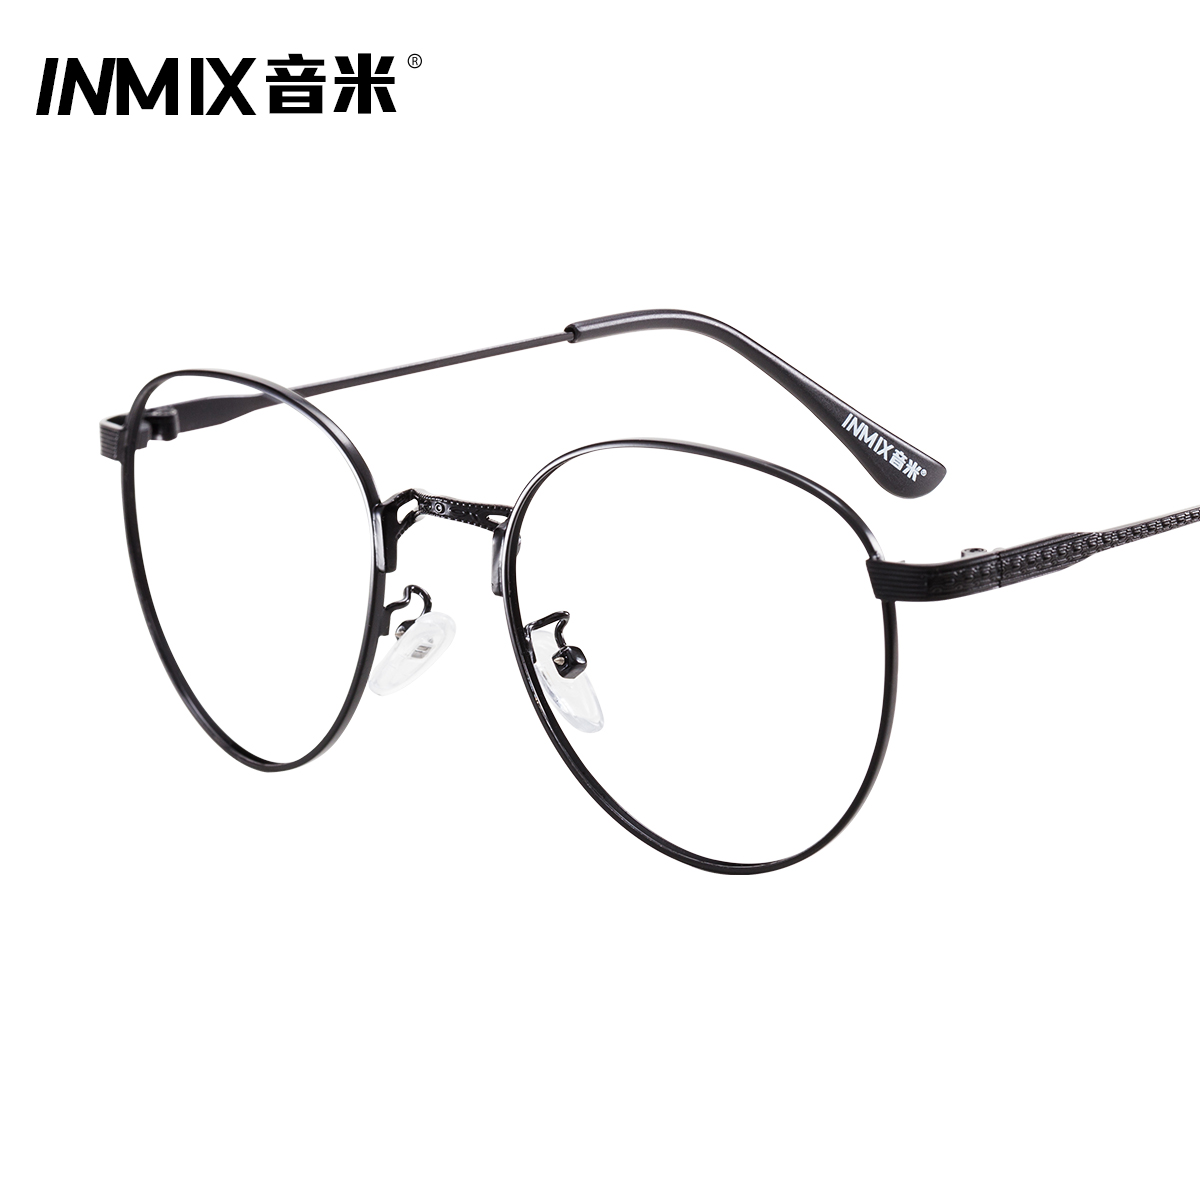 Wire Frame Glasses Trend : metal glasses with thin frames Wrap Yourself Thin